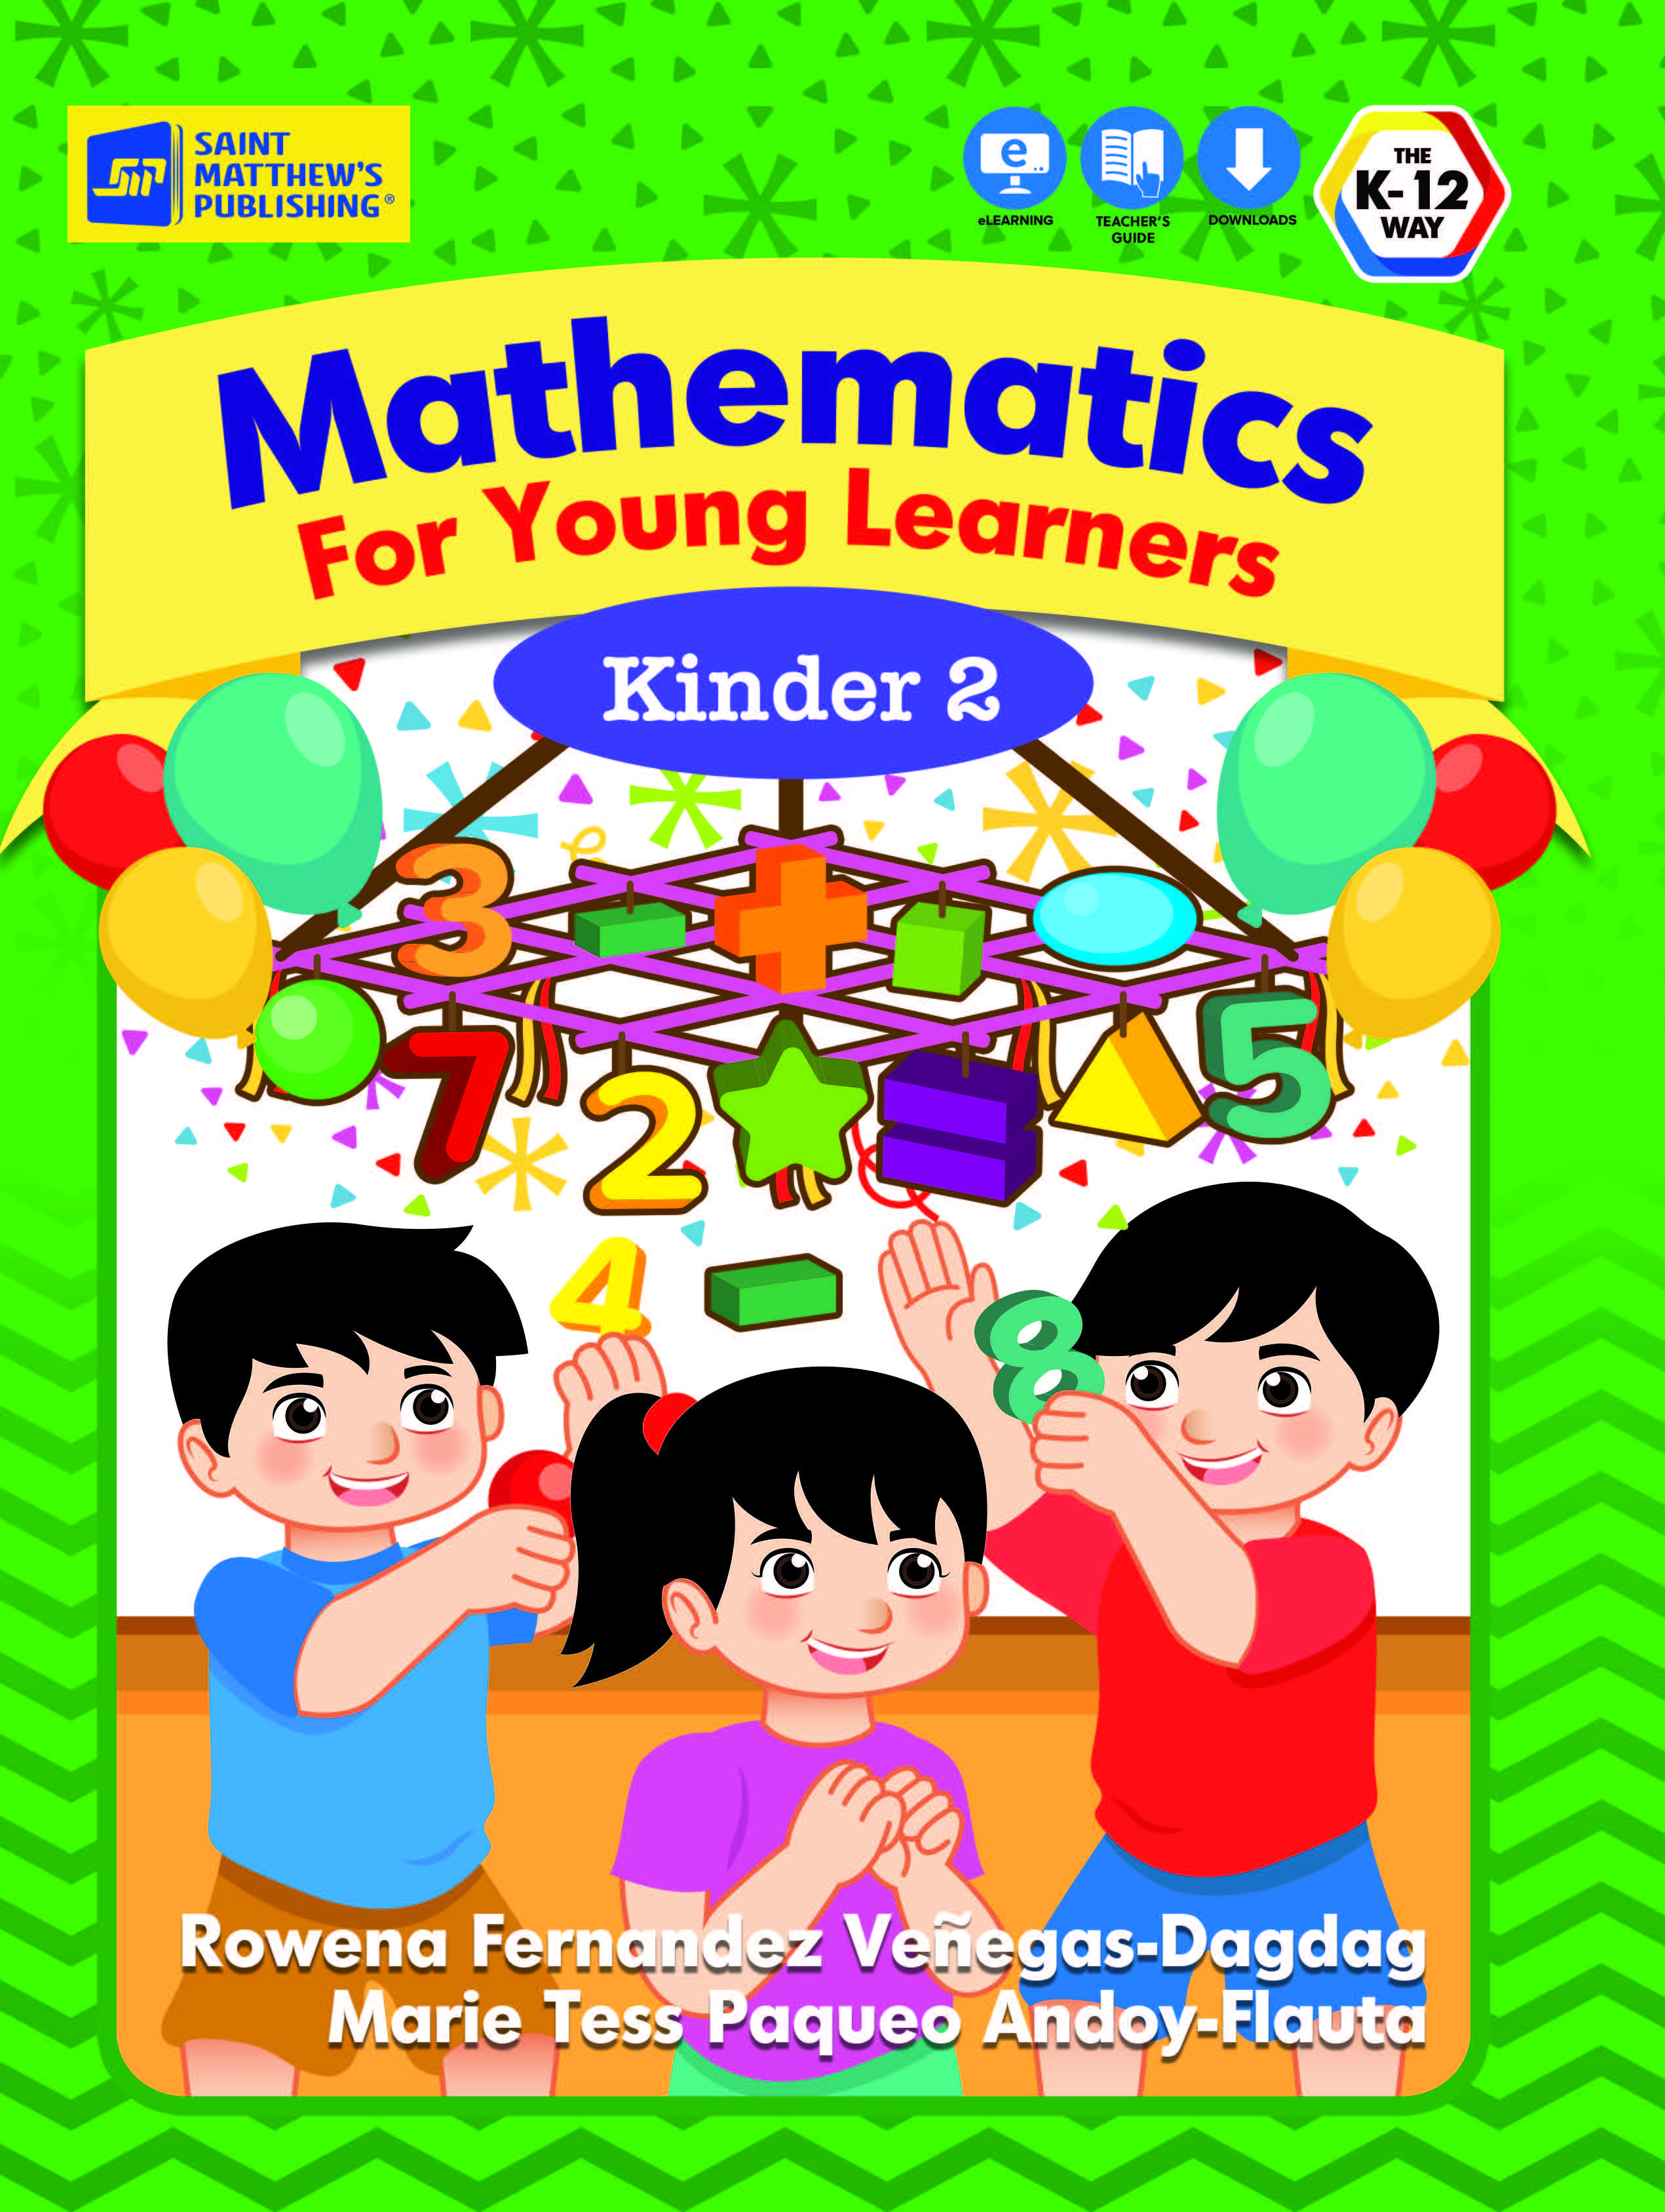 Mathematics For Young Learners Kinder 2 – St  Matthew's